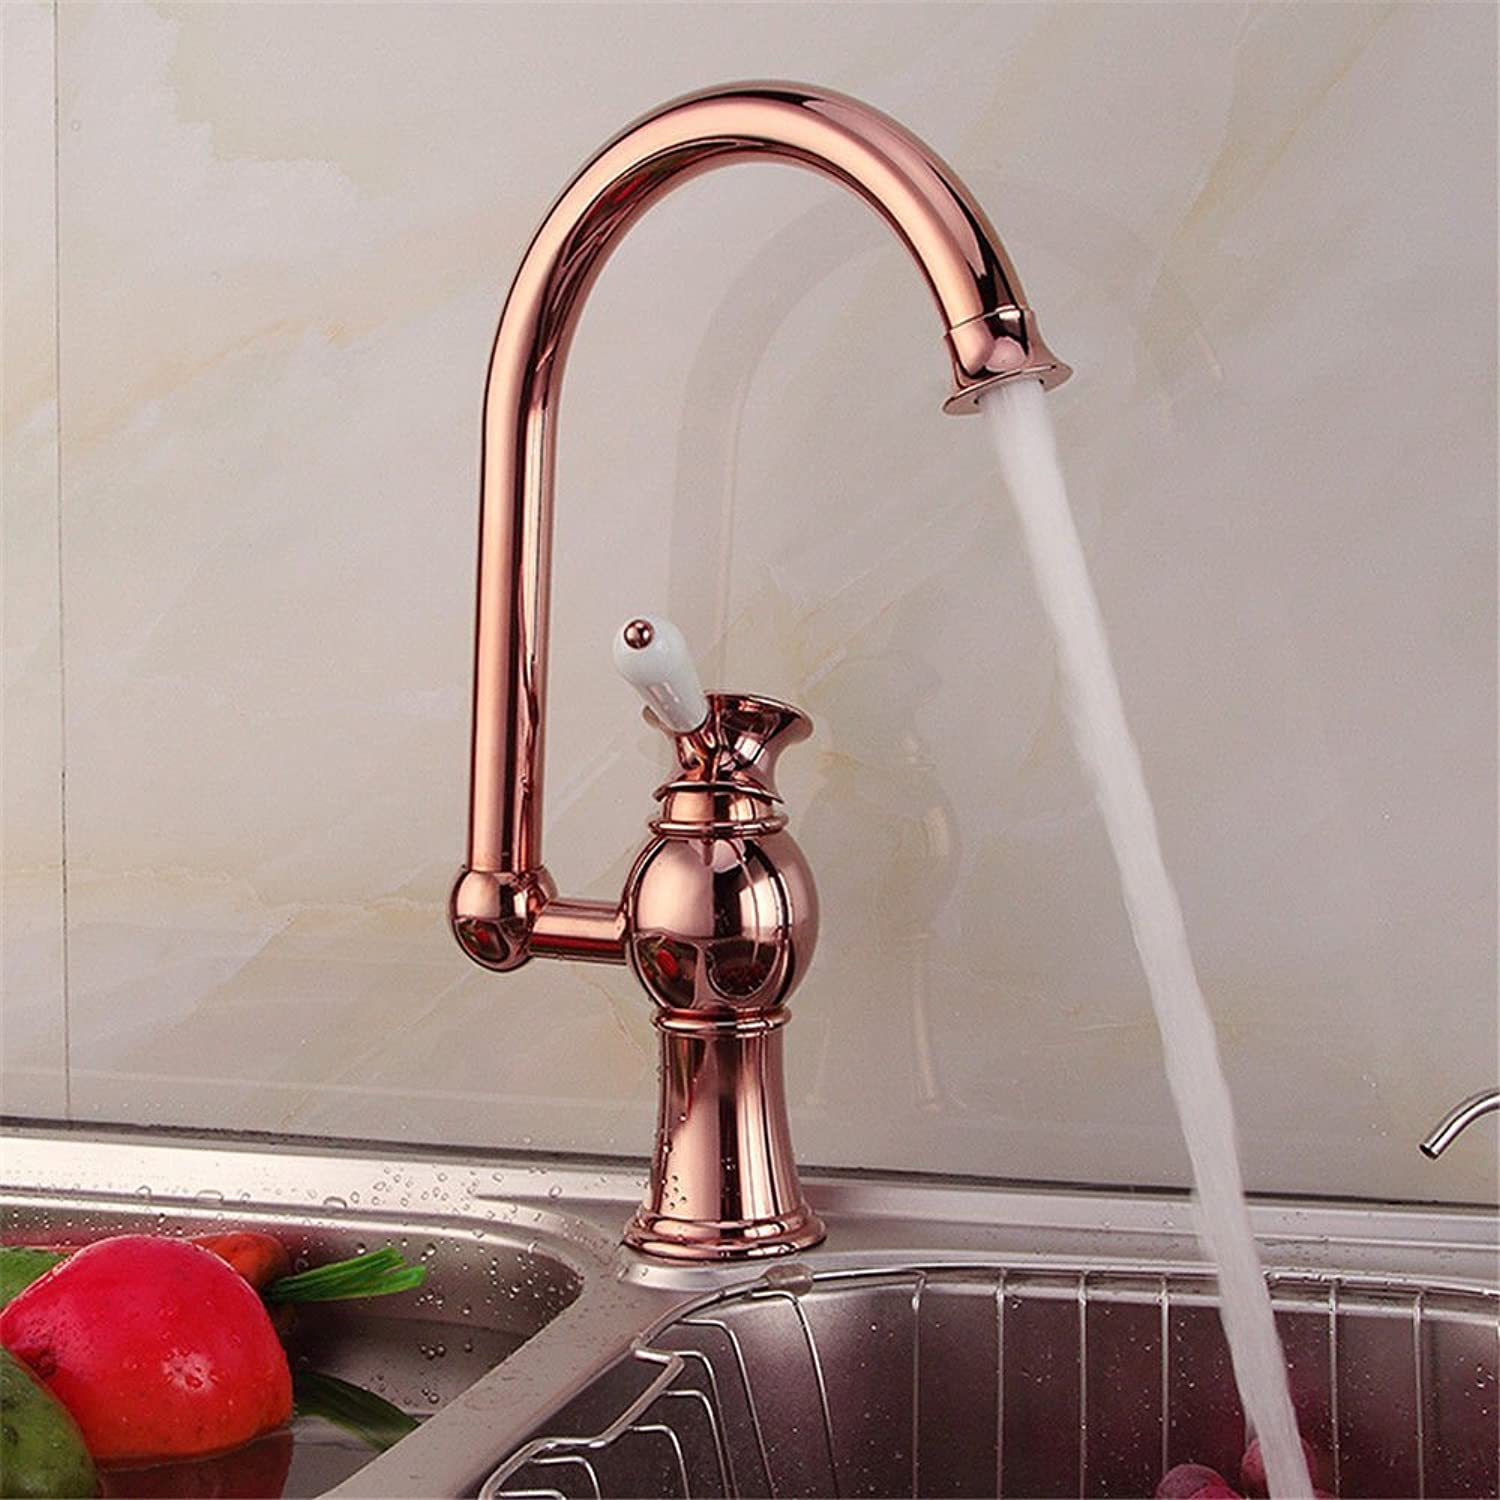 DOJOF Commercial Style Kitchen Taps Red Bronze Hot and Cold Water Valve redating Brass Single Hole Kitchen Sink Taps